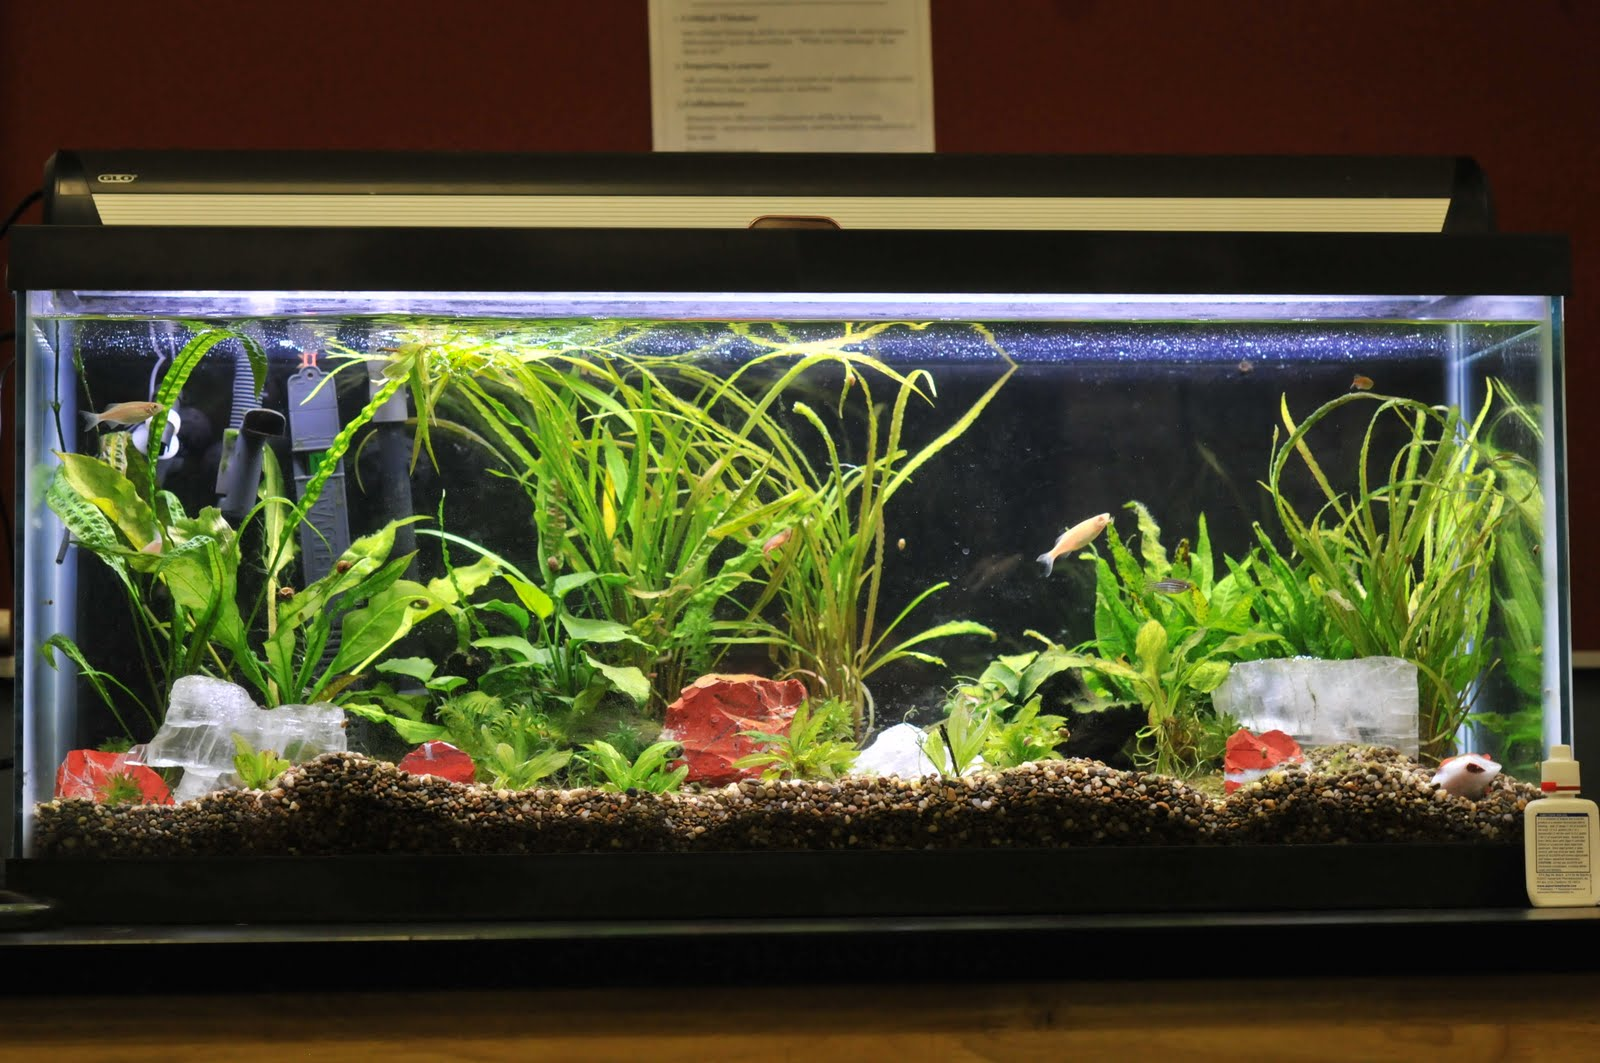 Mr. DeWitt's Classes: Last Year's Aquarium Design Projects